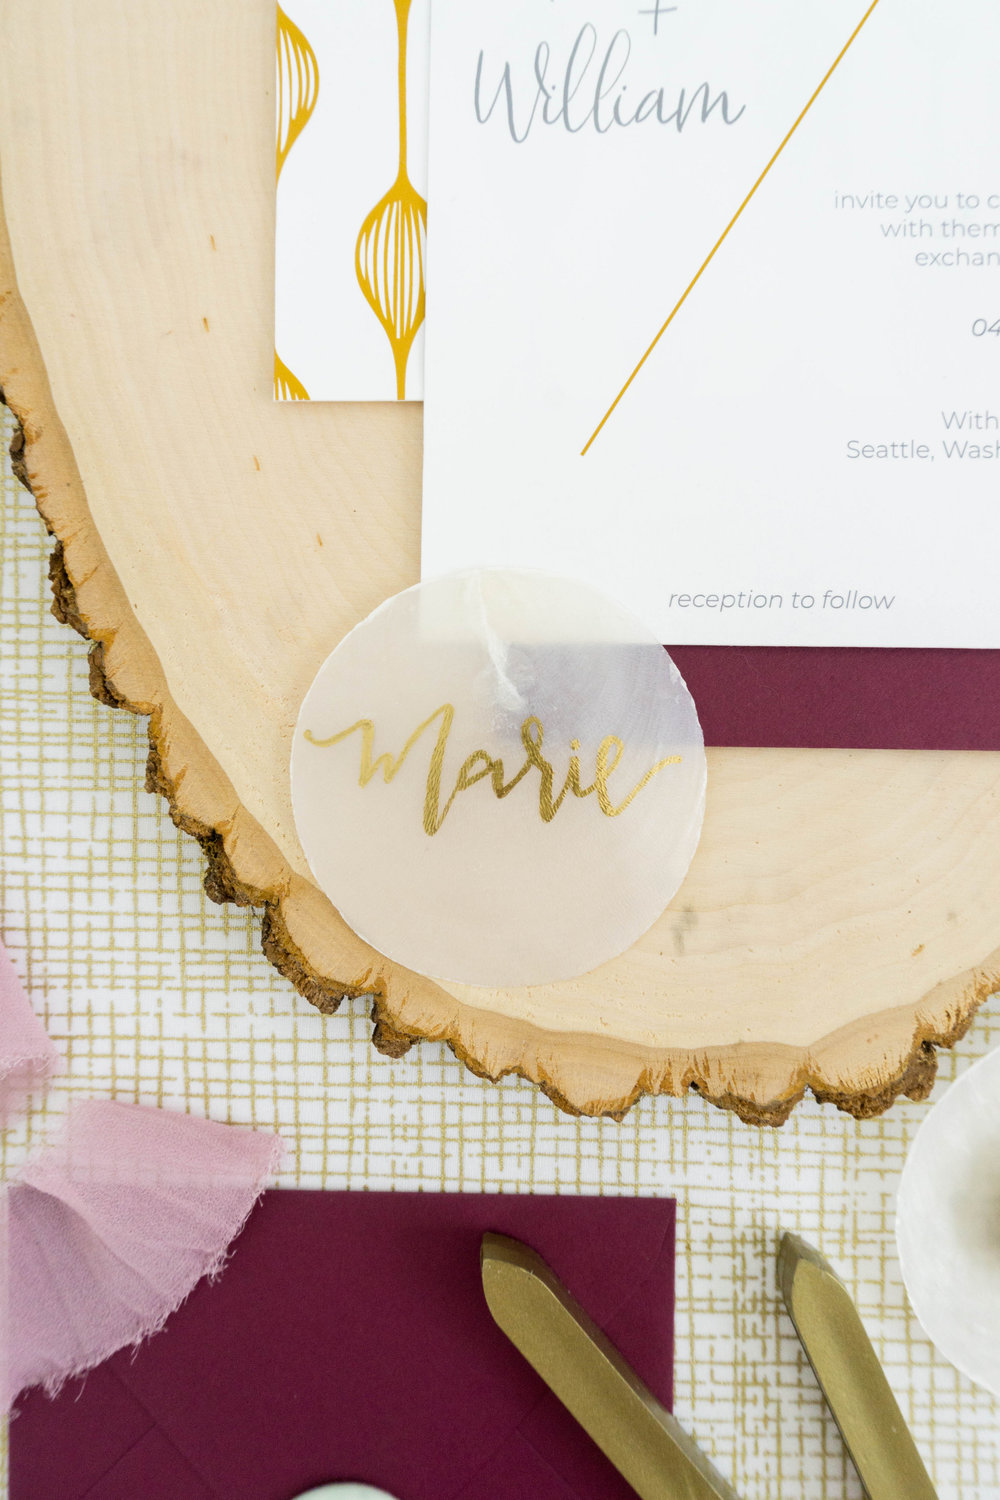 love-fern-design-studio-custom-wedding-invitations-for-the-modern-couple-modern-calligraphy-in-seattle-washington-custom-wedding-stationery-modern-and-minimal-invitation-suite-shell-place-card